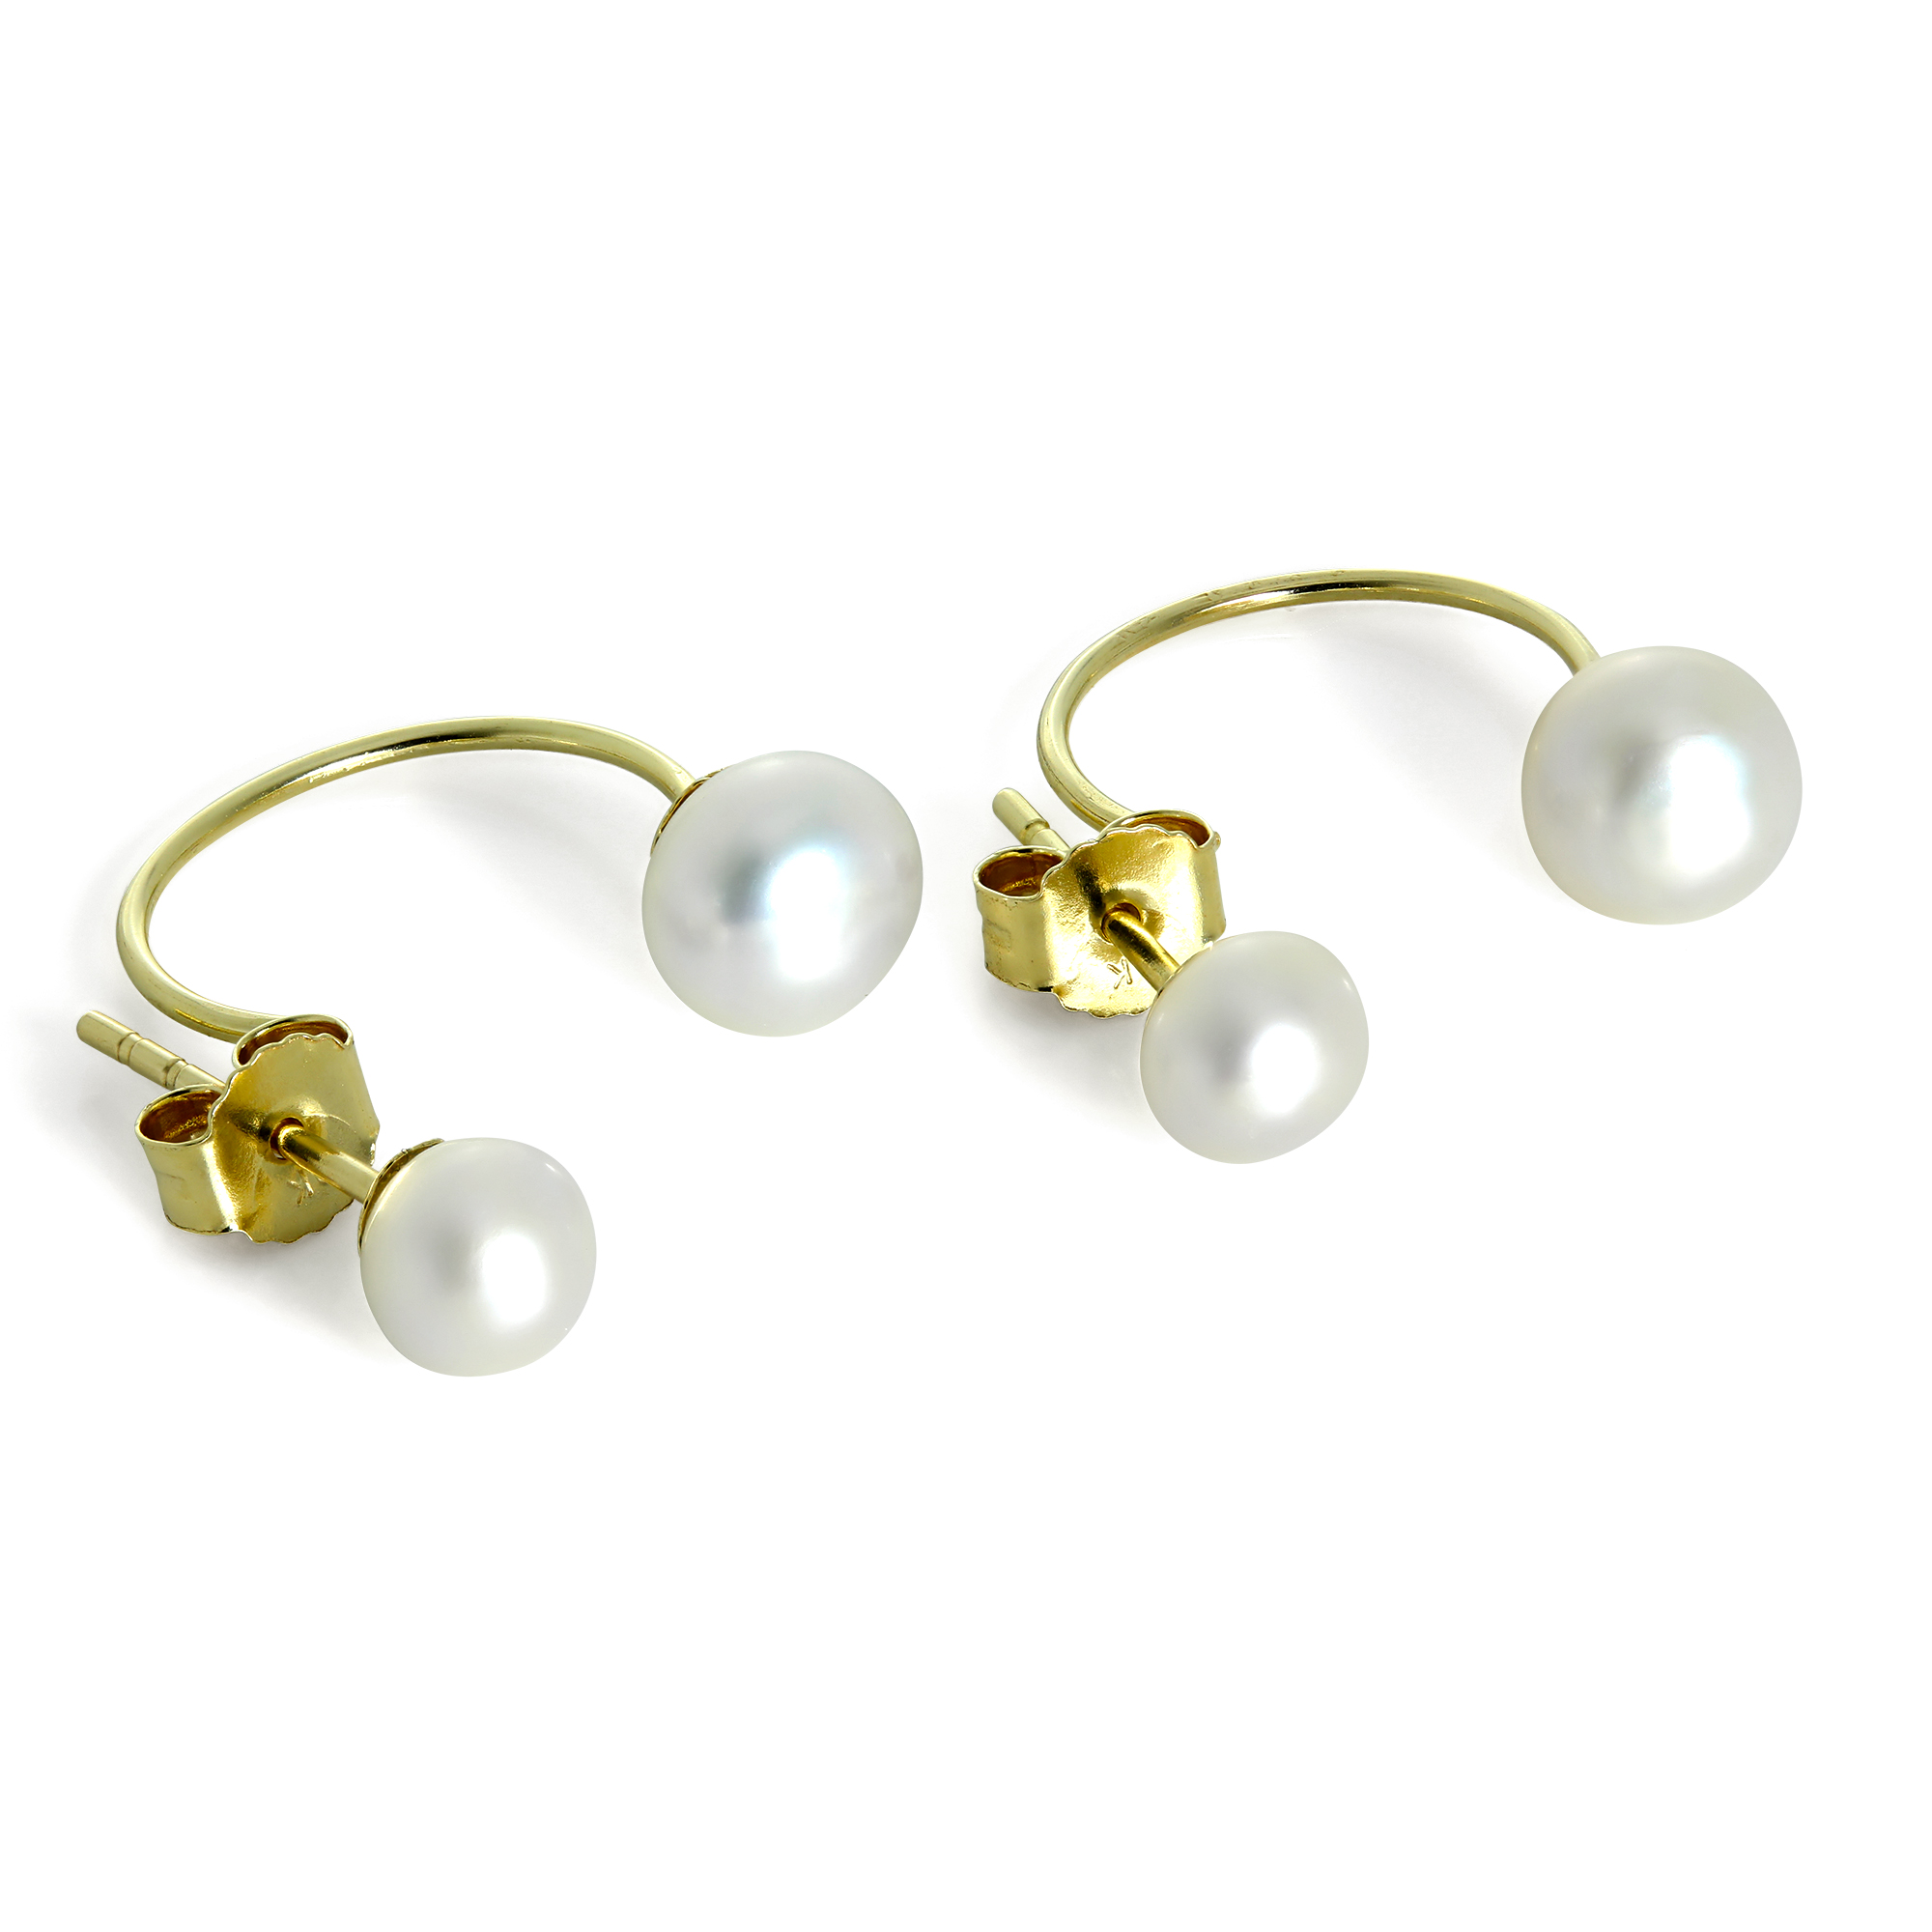 birthstone pin blue pearl yellow gold studs stud children small earrings cultured june pearls gray